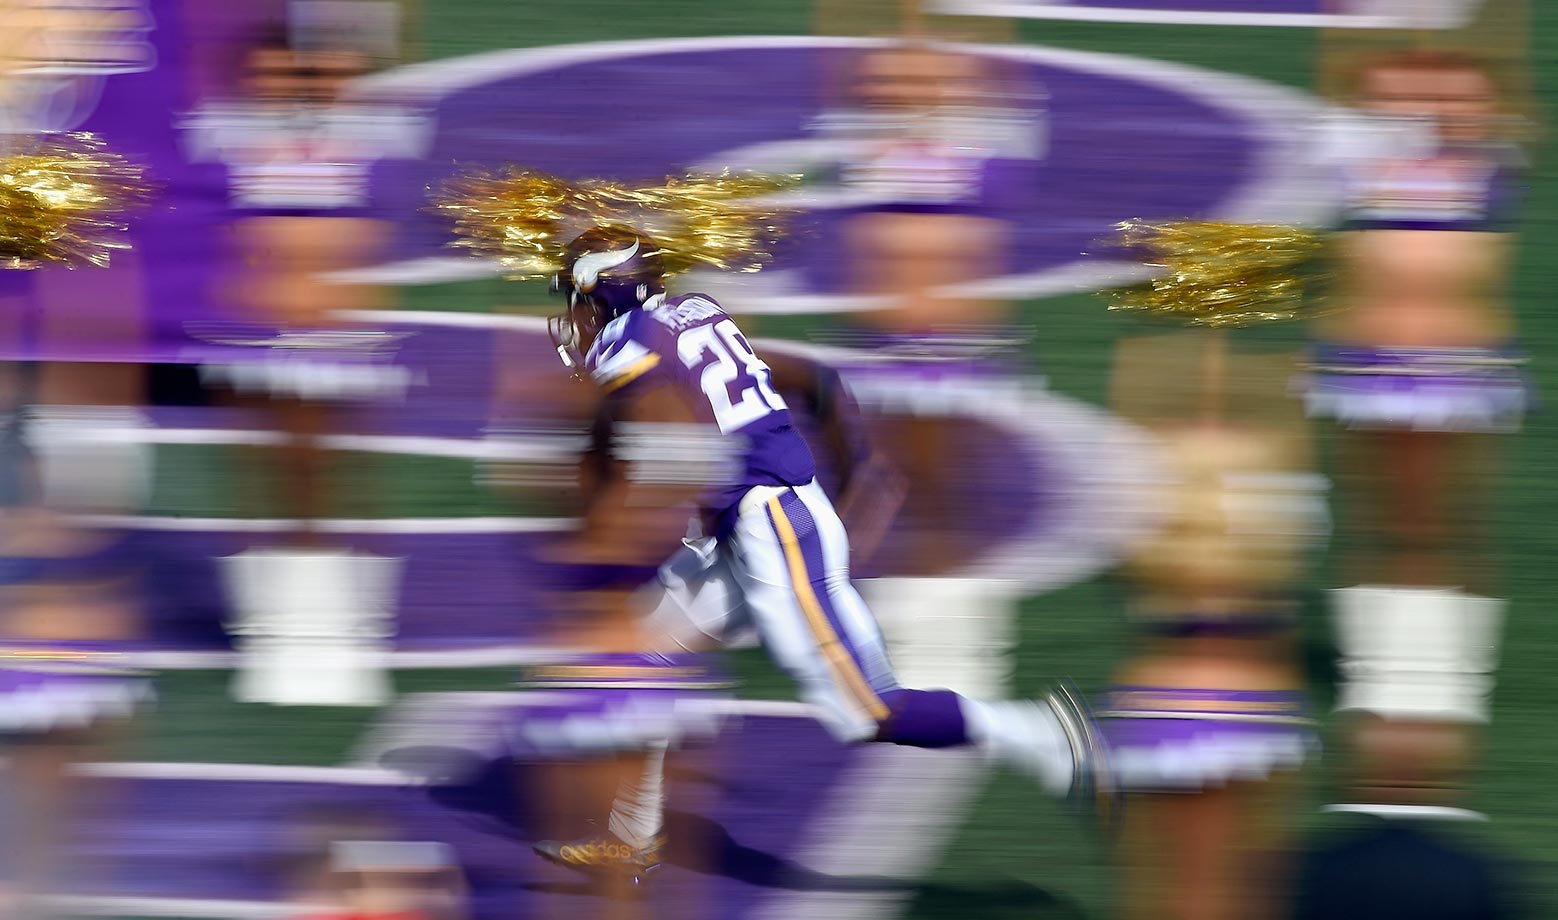 Adrian Peterson of the Minnesota Vikings runs onto the field before a game against the Detroit Lions.